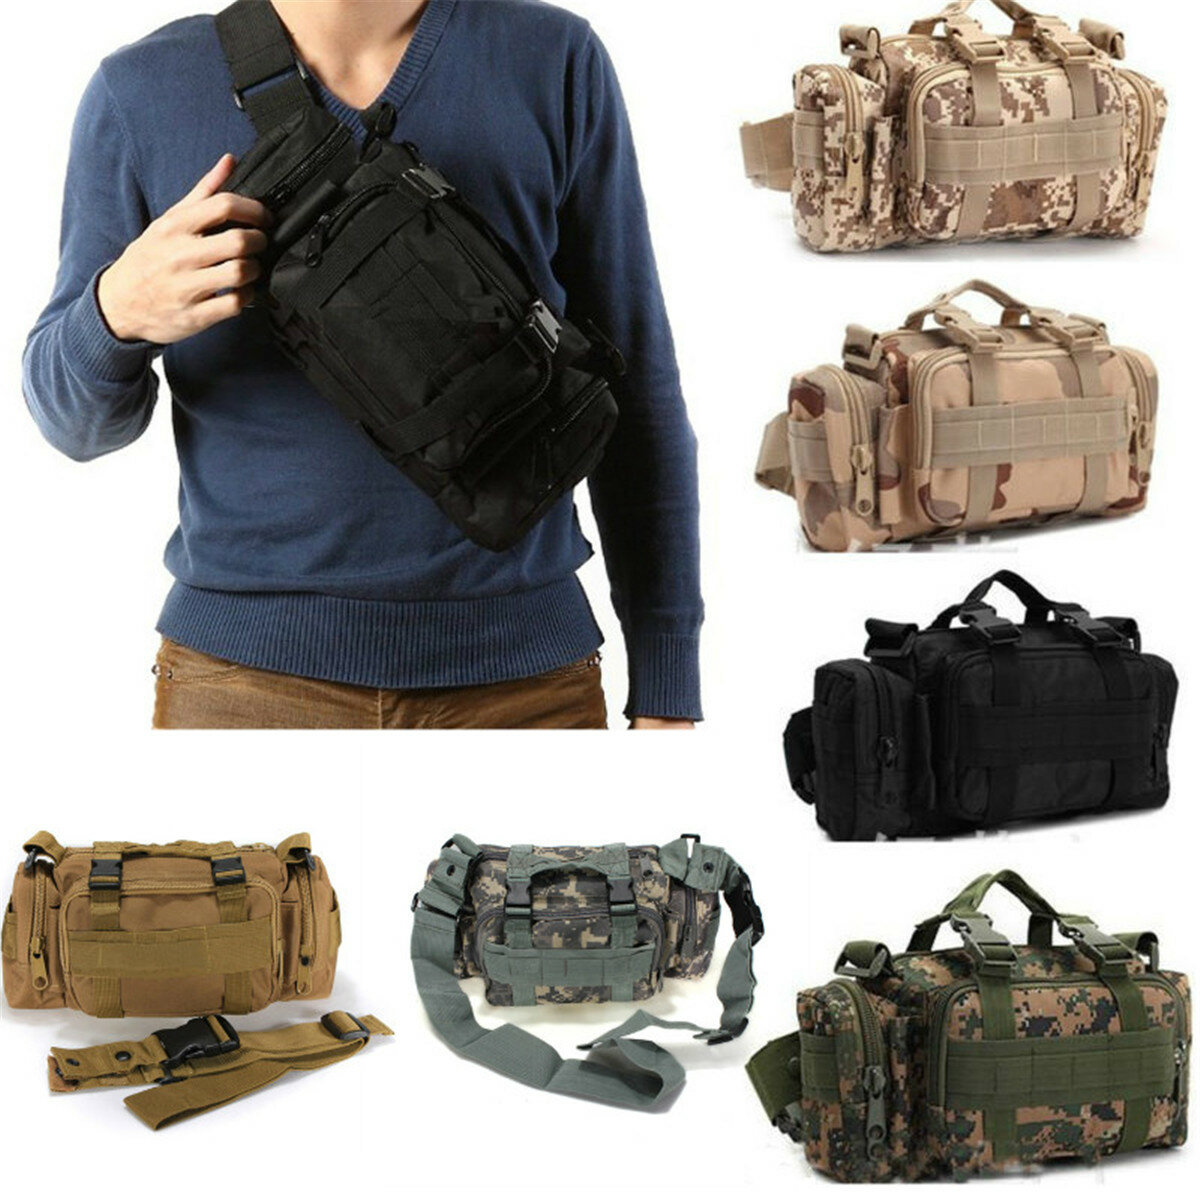 fd7d356d7754 Outdoor Sports Camouflage Backpack Rucksack Camping Hiking Waist Bag Pack  COD